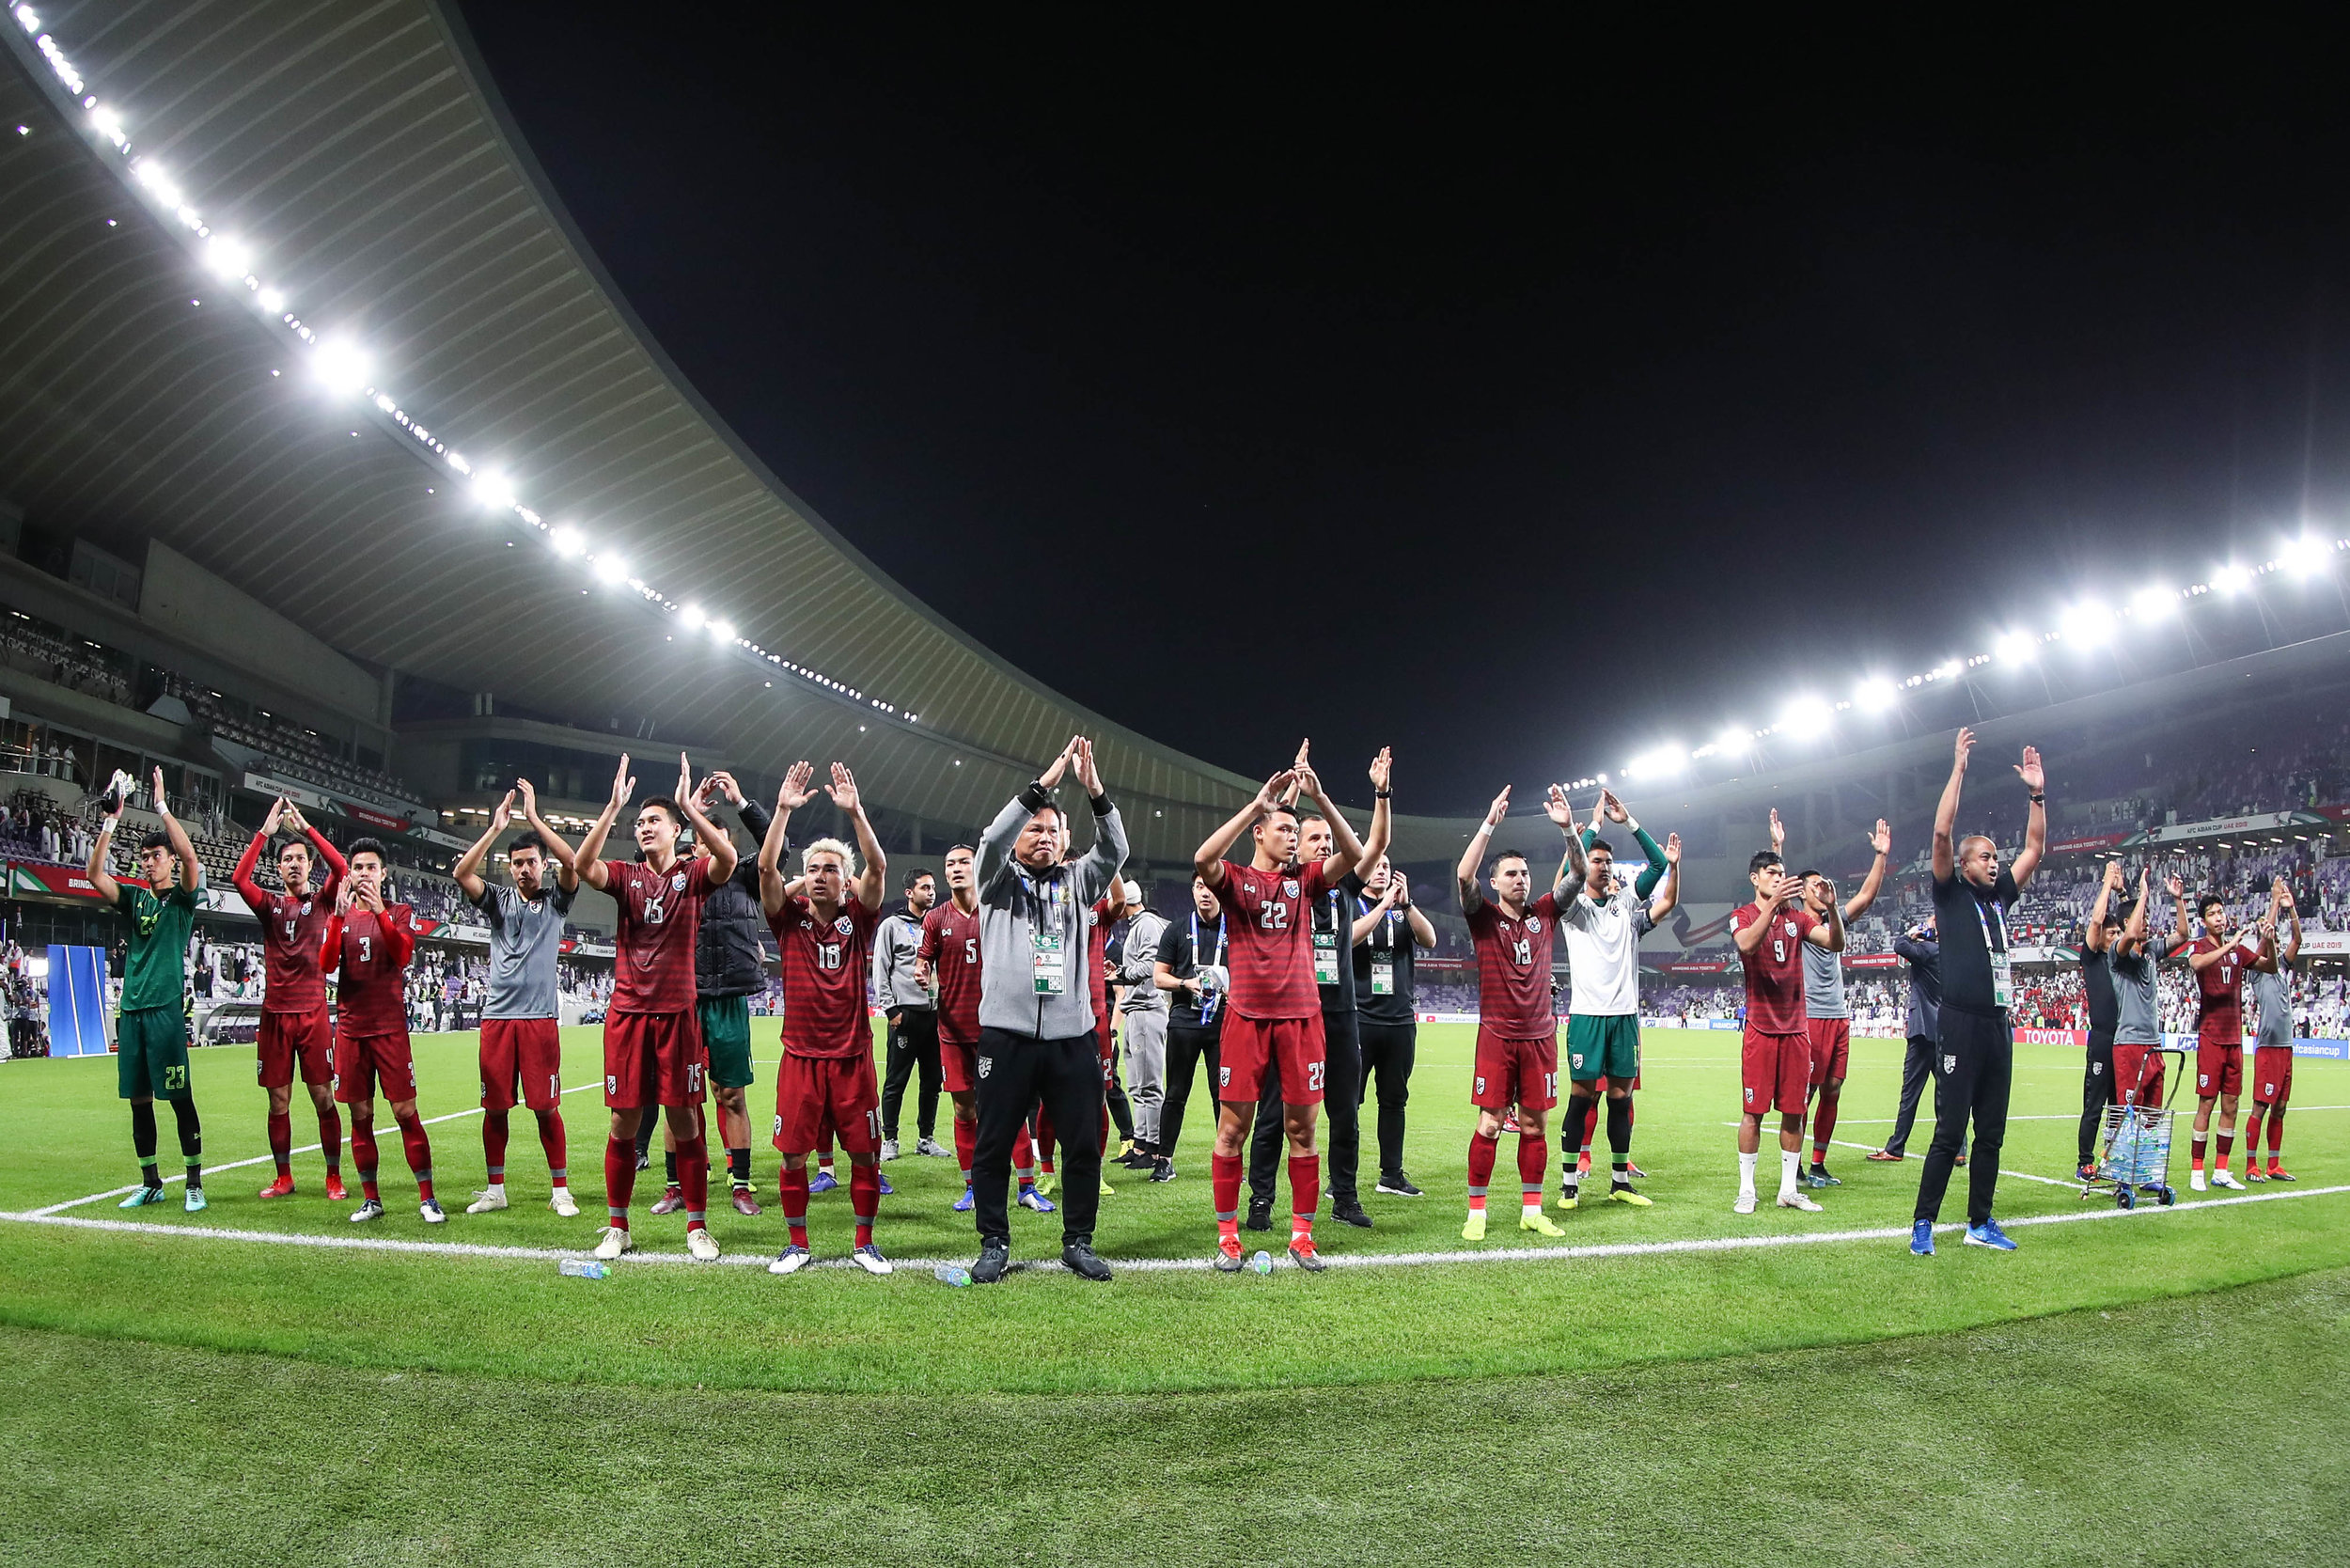 Thailand, surprised everyone on their way to the next stage (Asian Football Confederation (AFC))